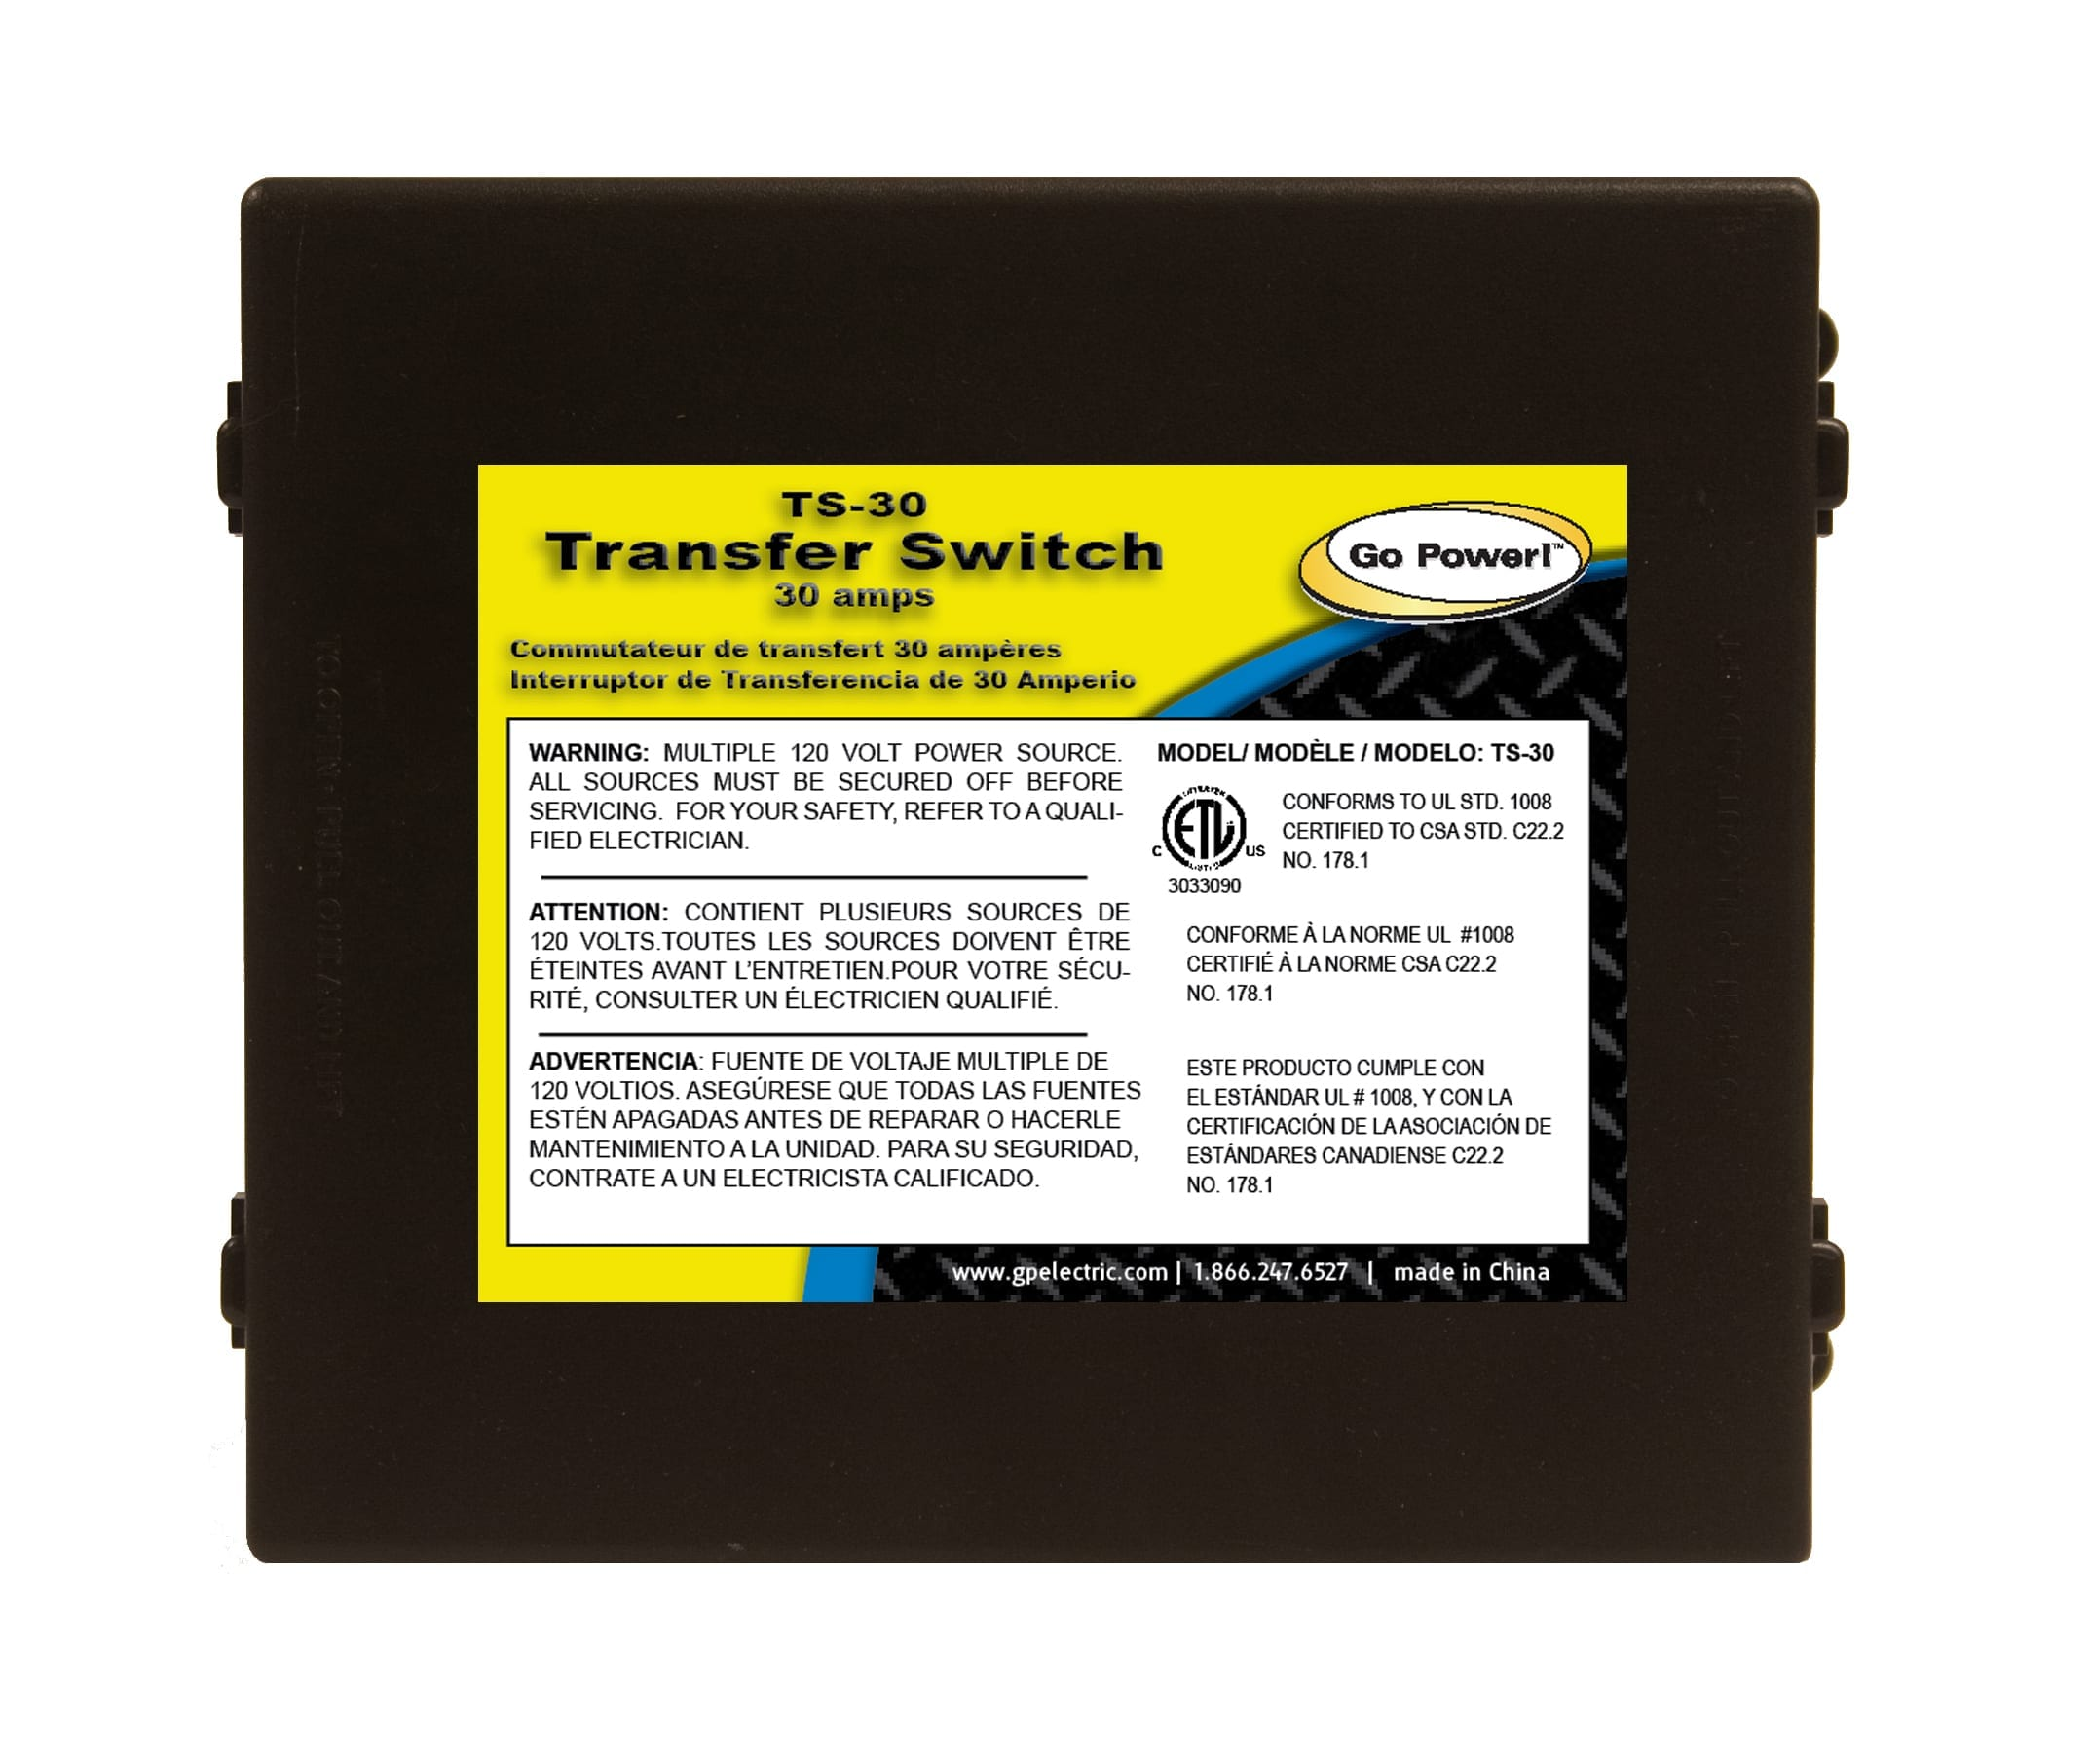 30 amp Transfer Switch | Go Power